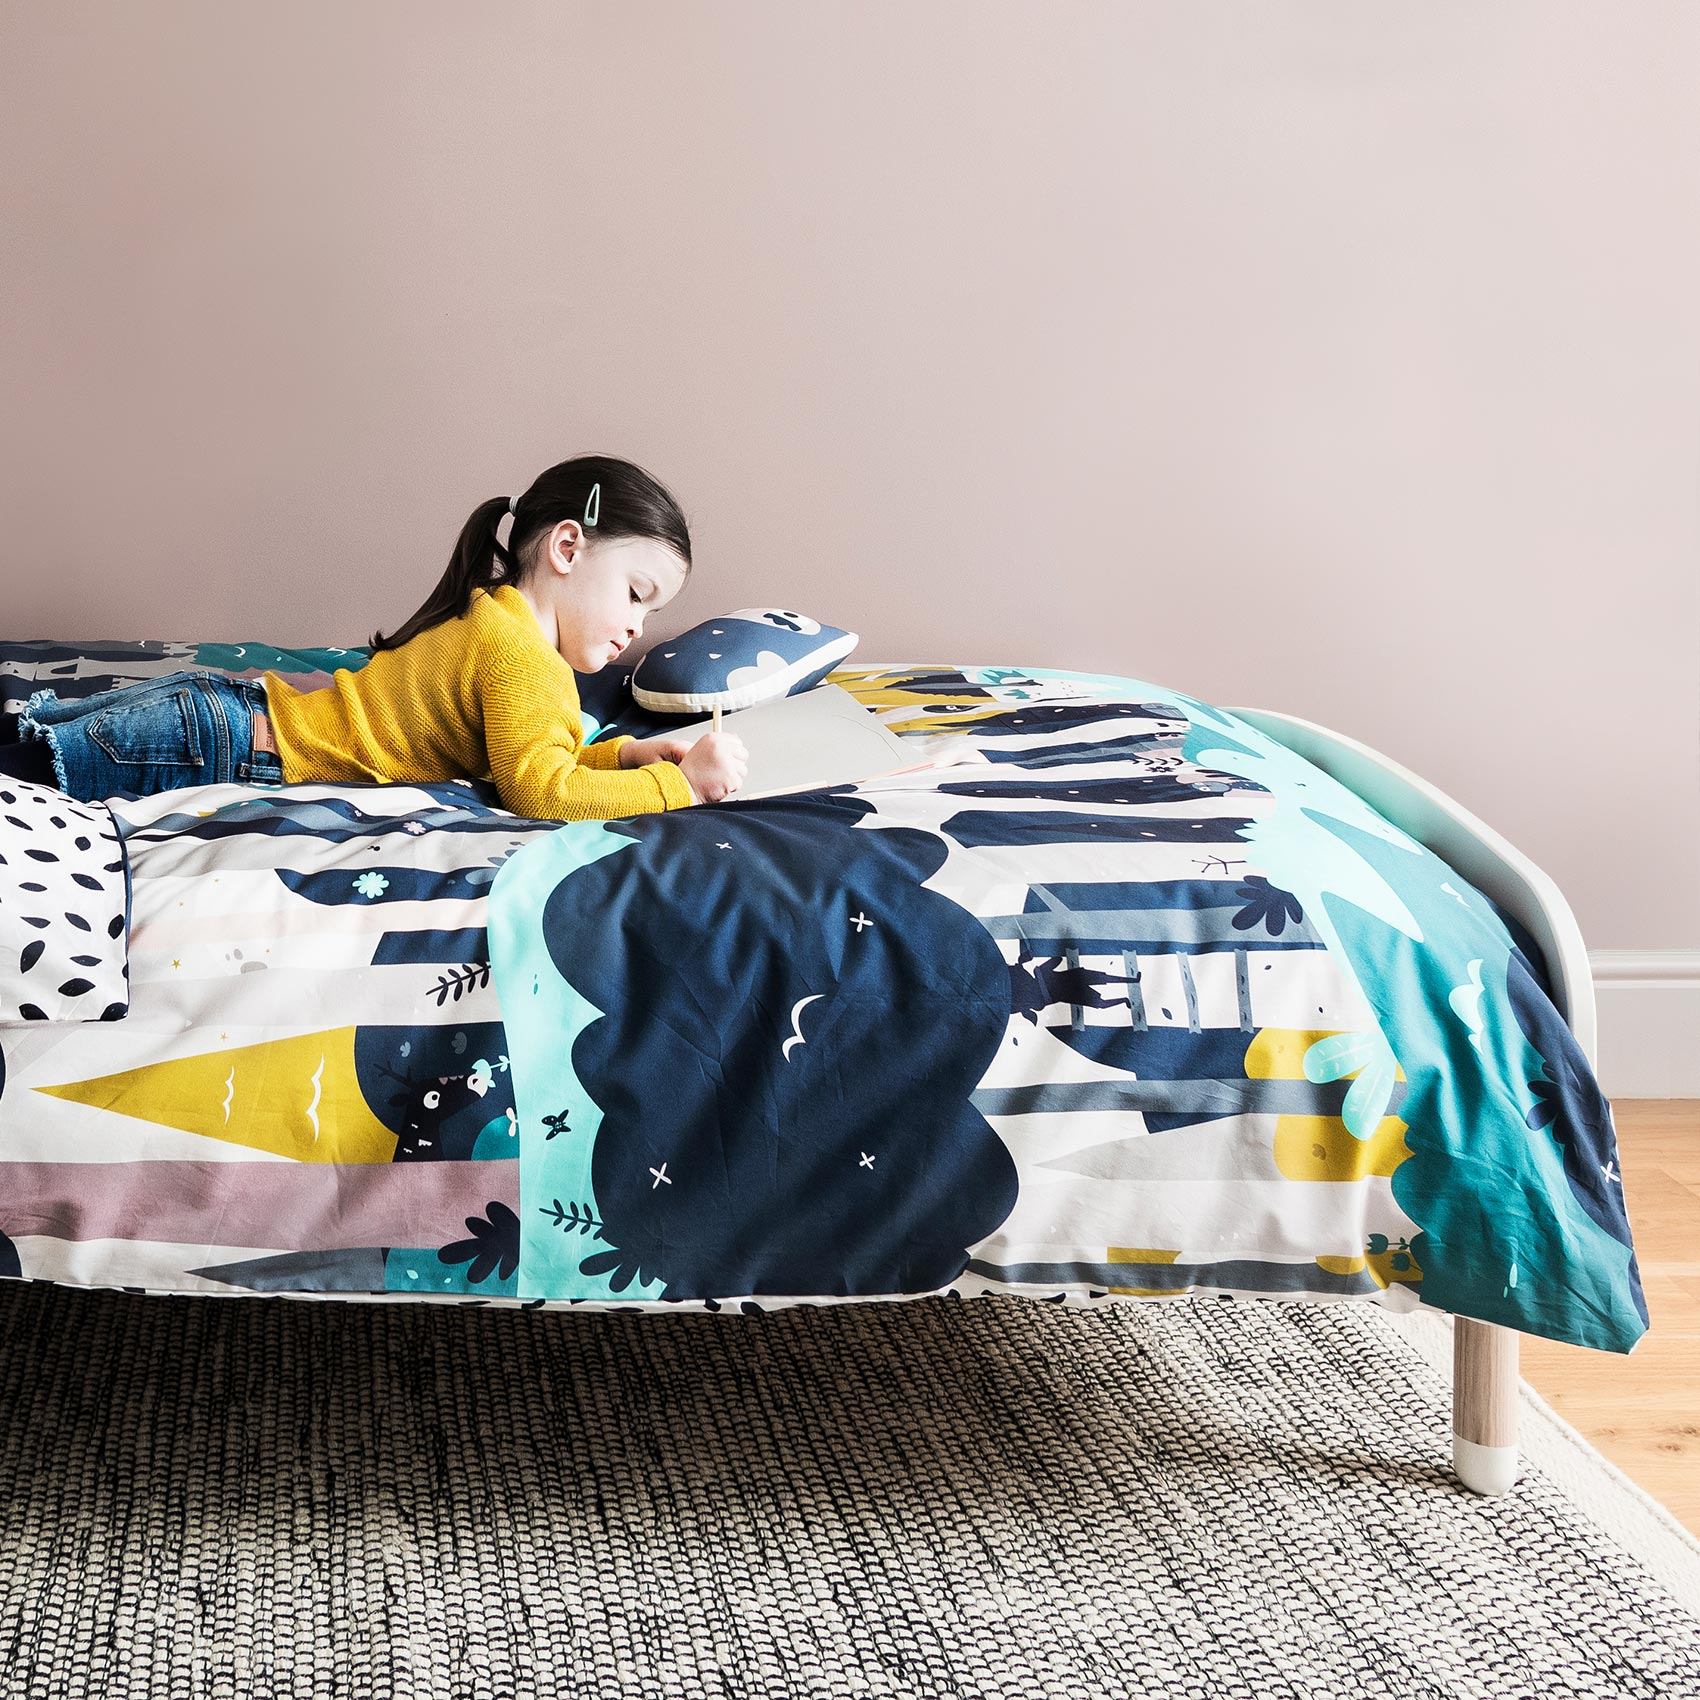 Young girl in a yellow top lying on her bed drawing on top of Pea Enchanted Forest bedding.